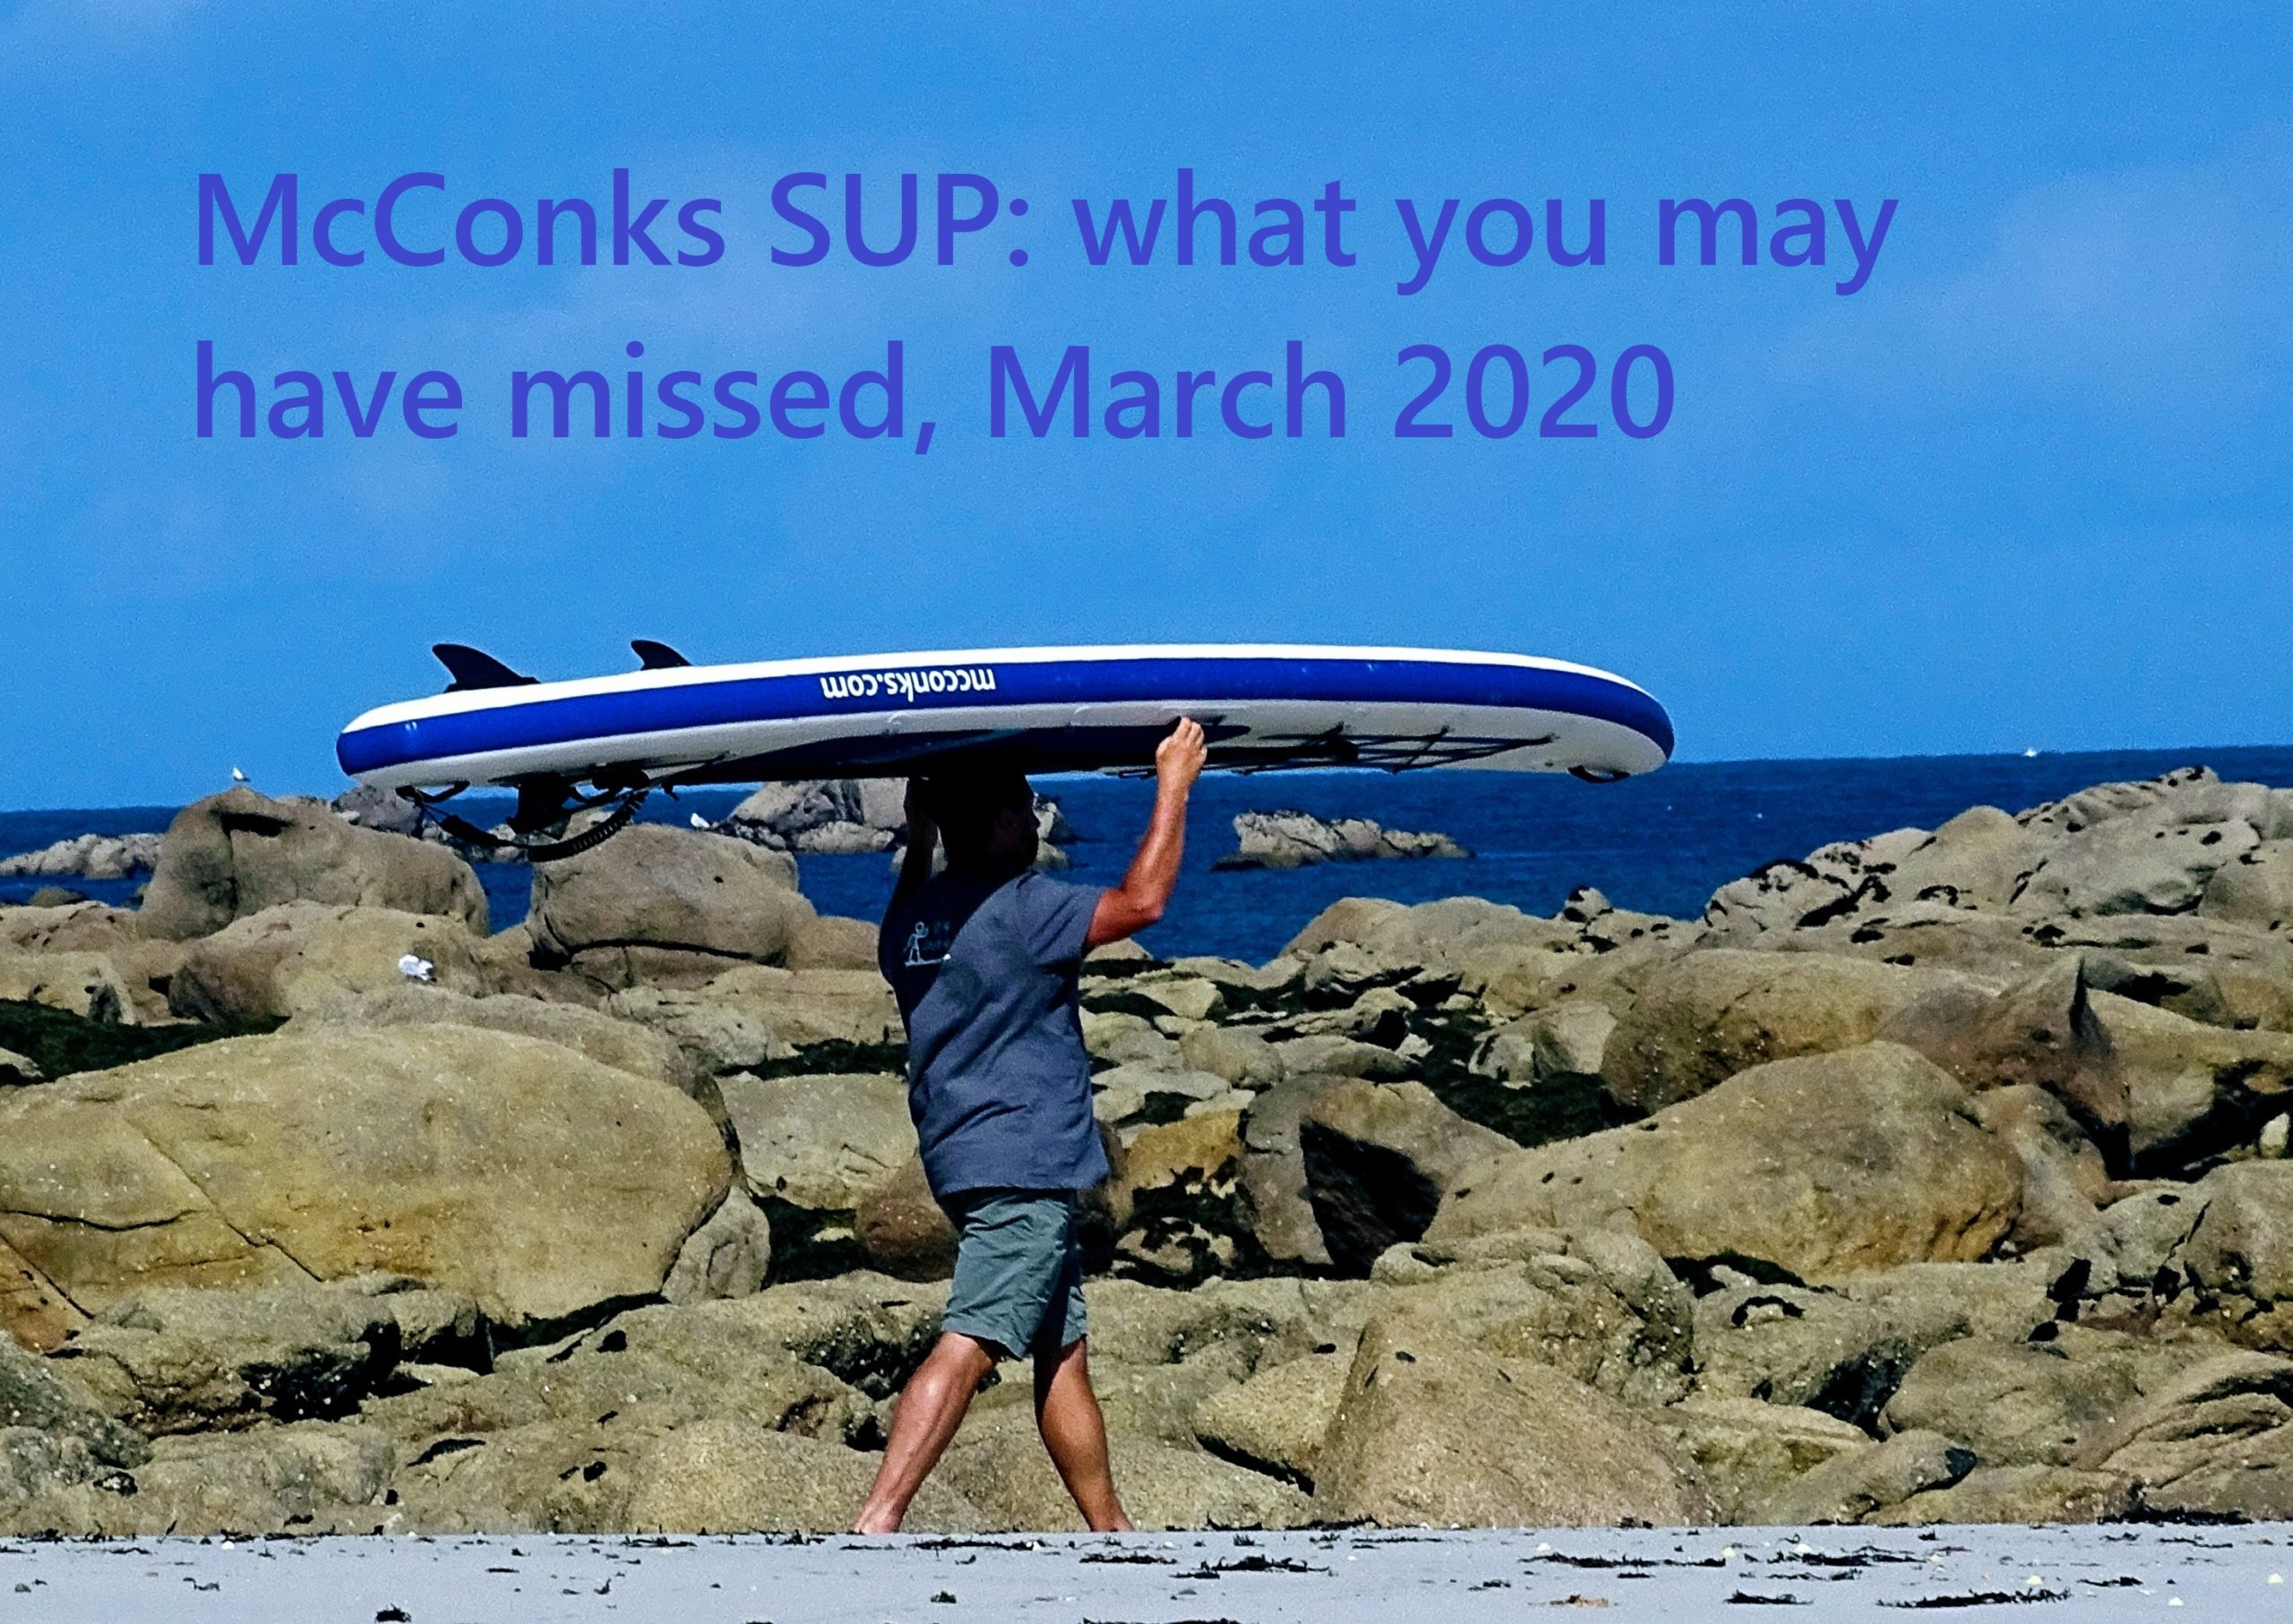 McConks SUP blog round-up, March 2020